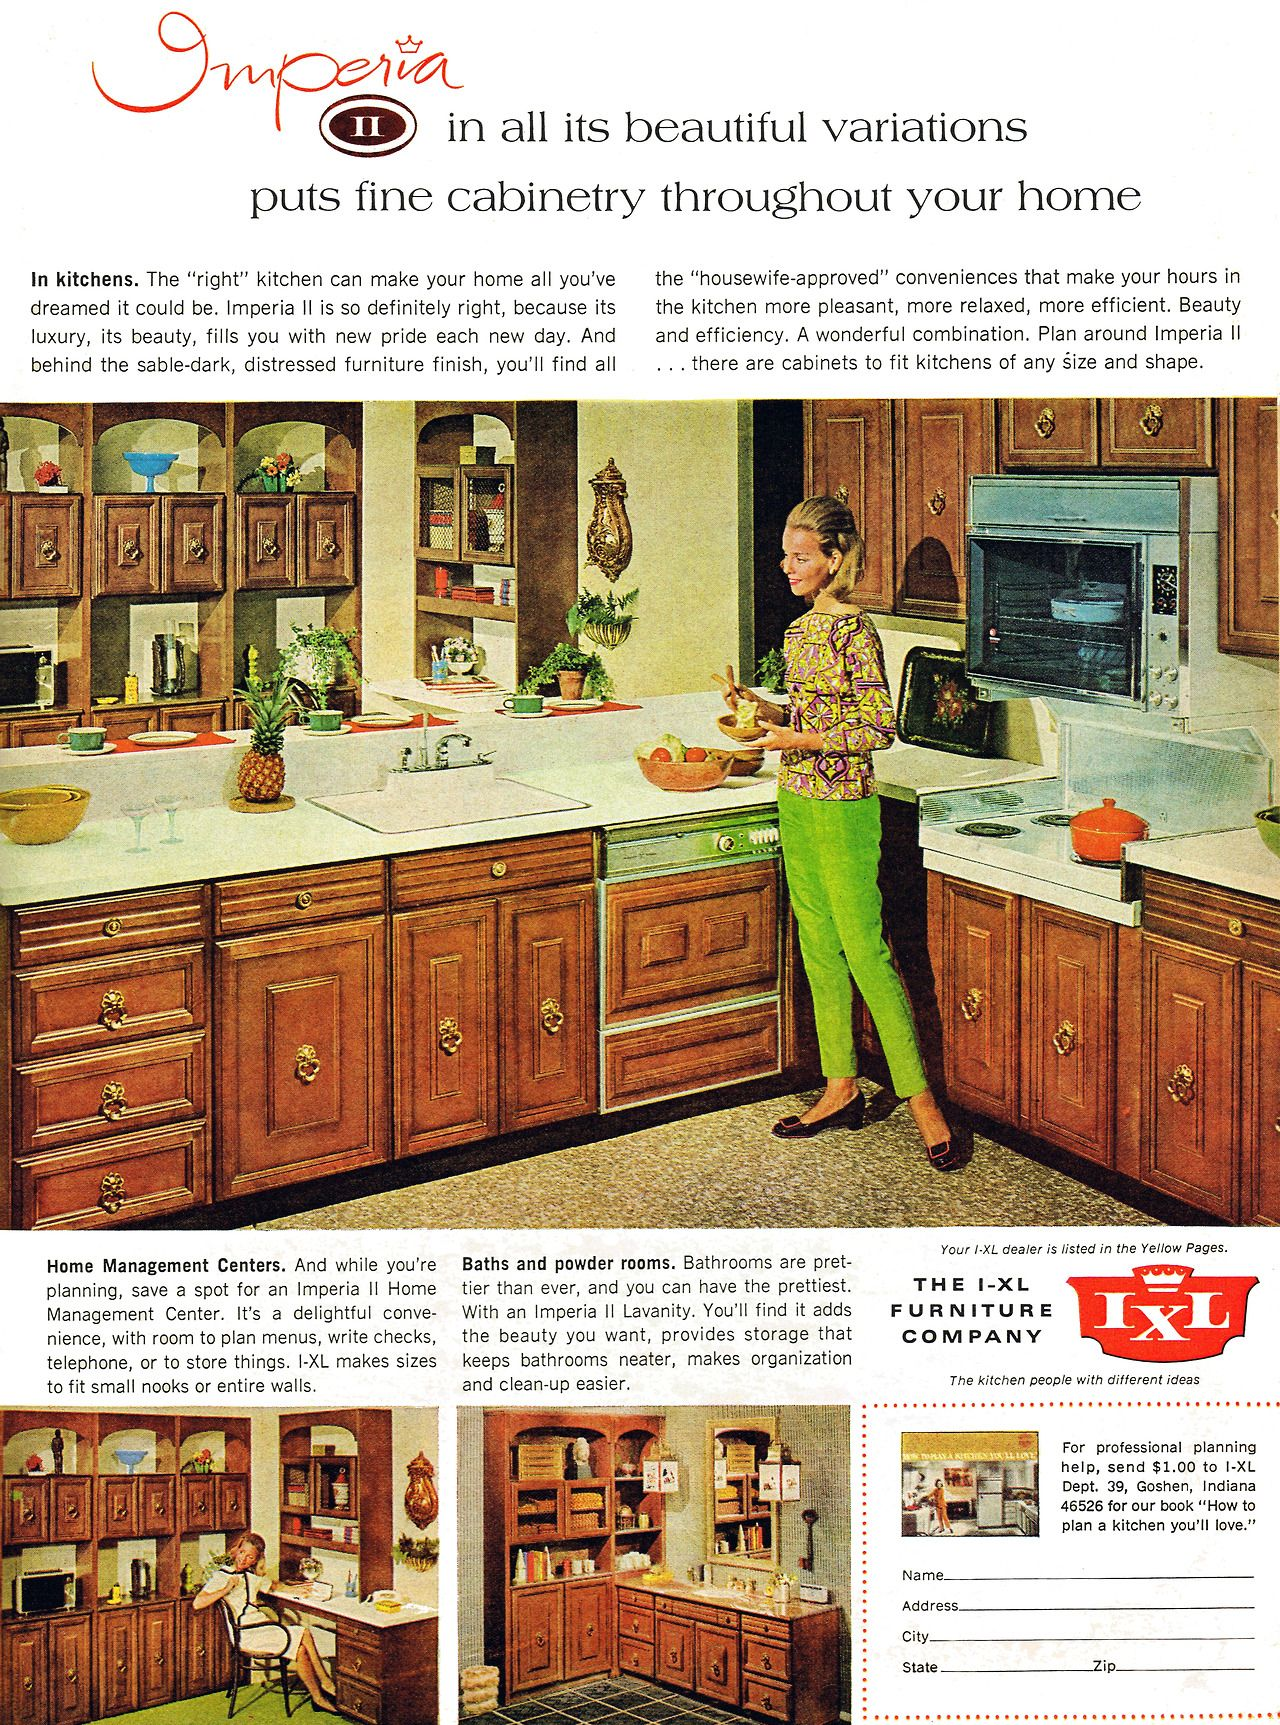 Imperia Ii Kitchen Cabinets By I Xl Furniture Company 1968 Retro Kitchen Vintage Kitchen Vintage Appliances